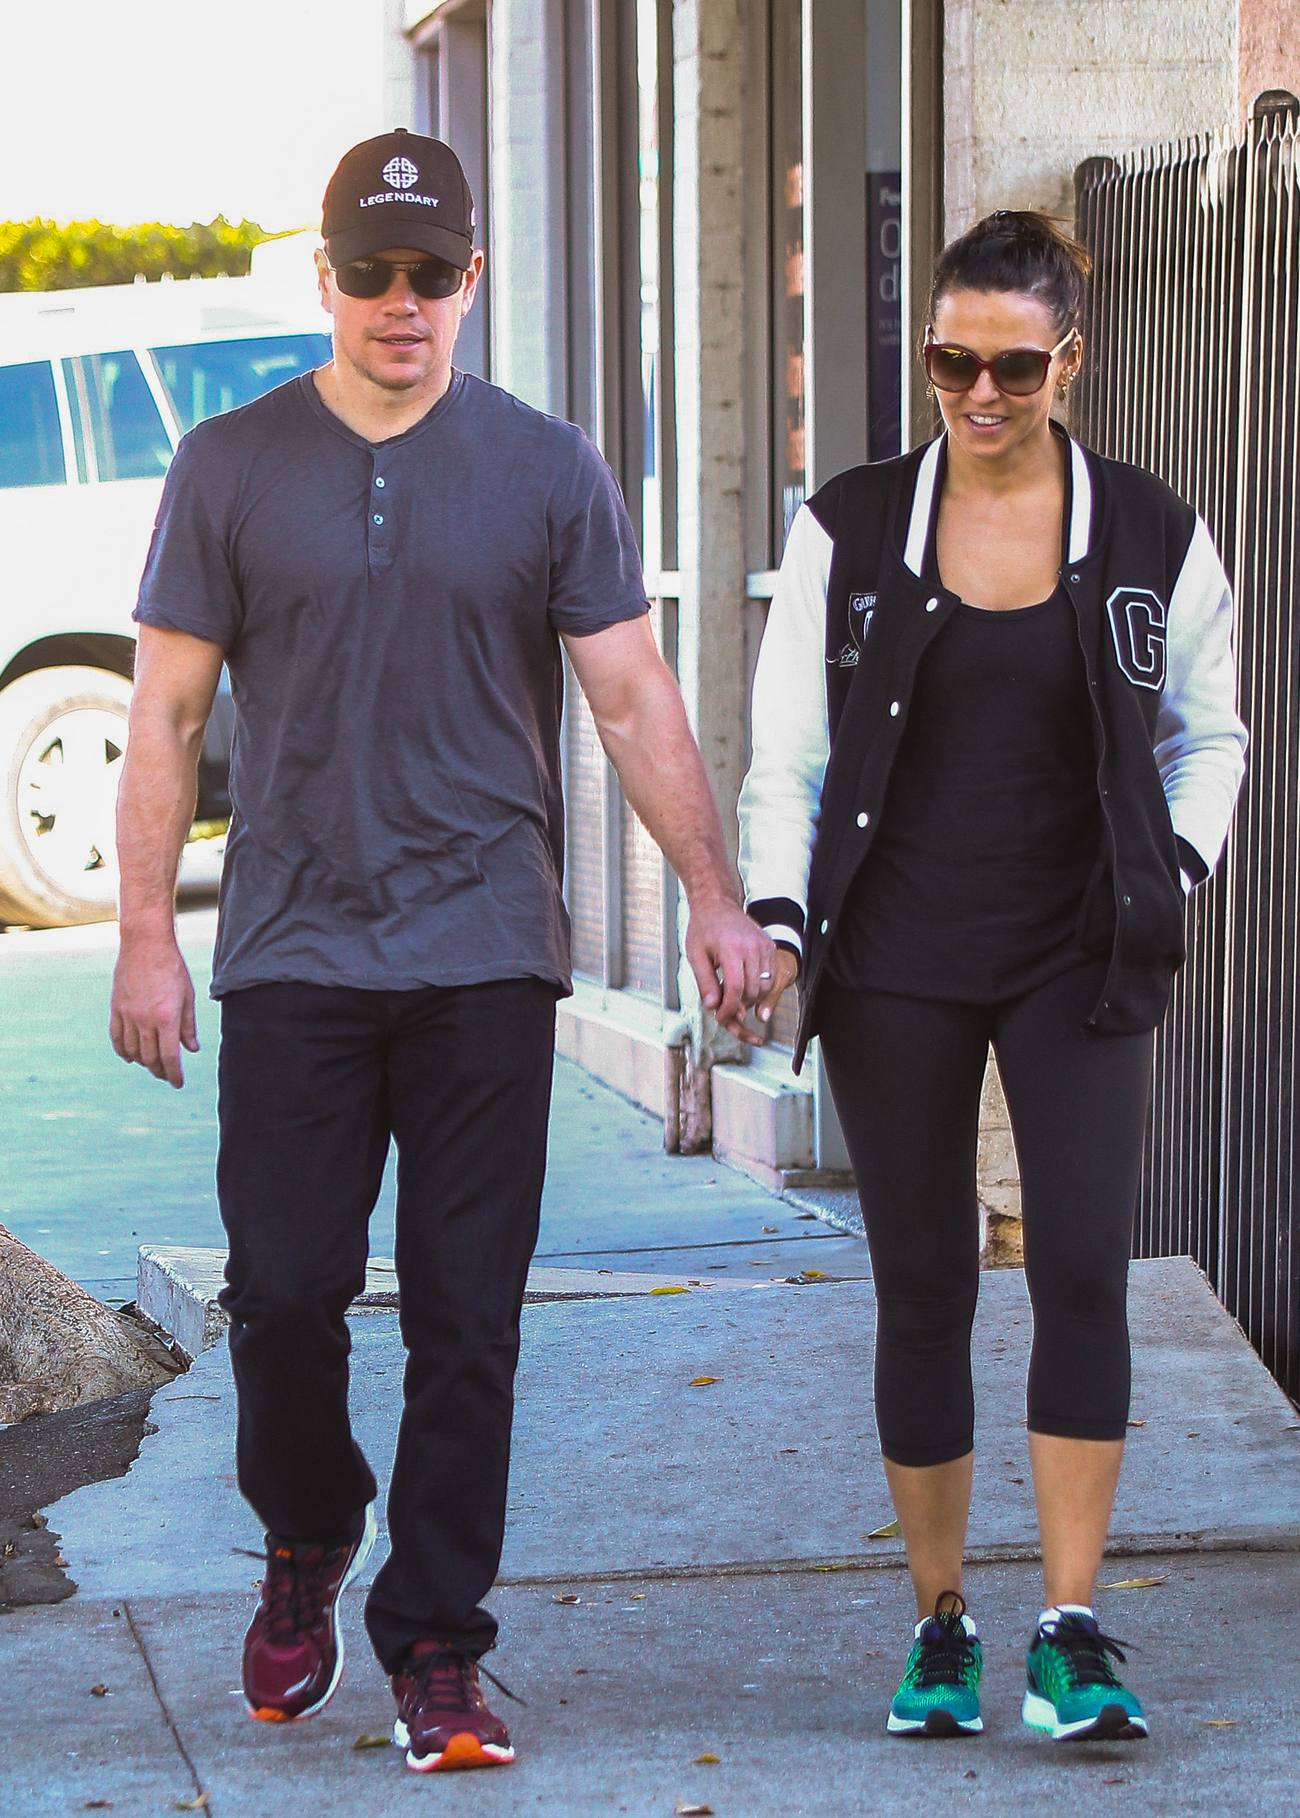 Matt Damon Out With His Wife Luciana Barroso